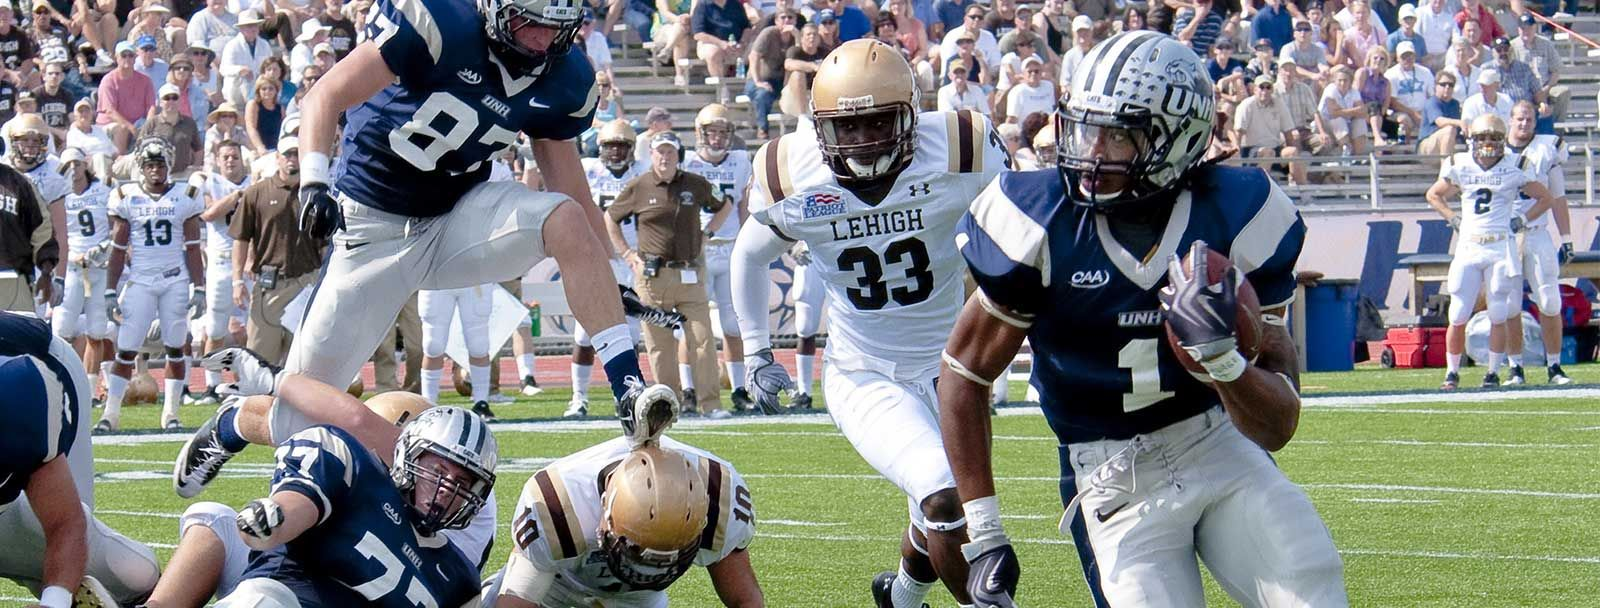 UNH Football home opener of 2014 September 13